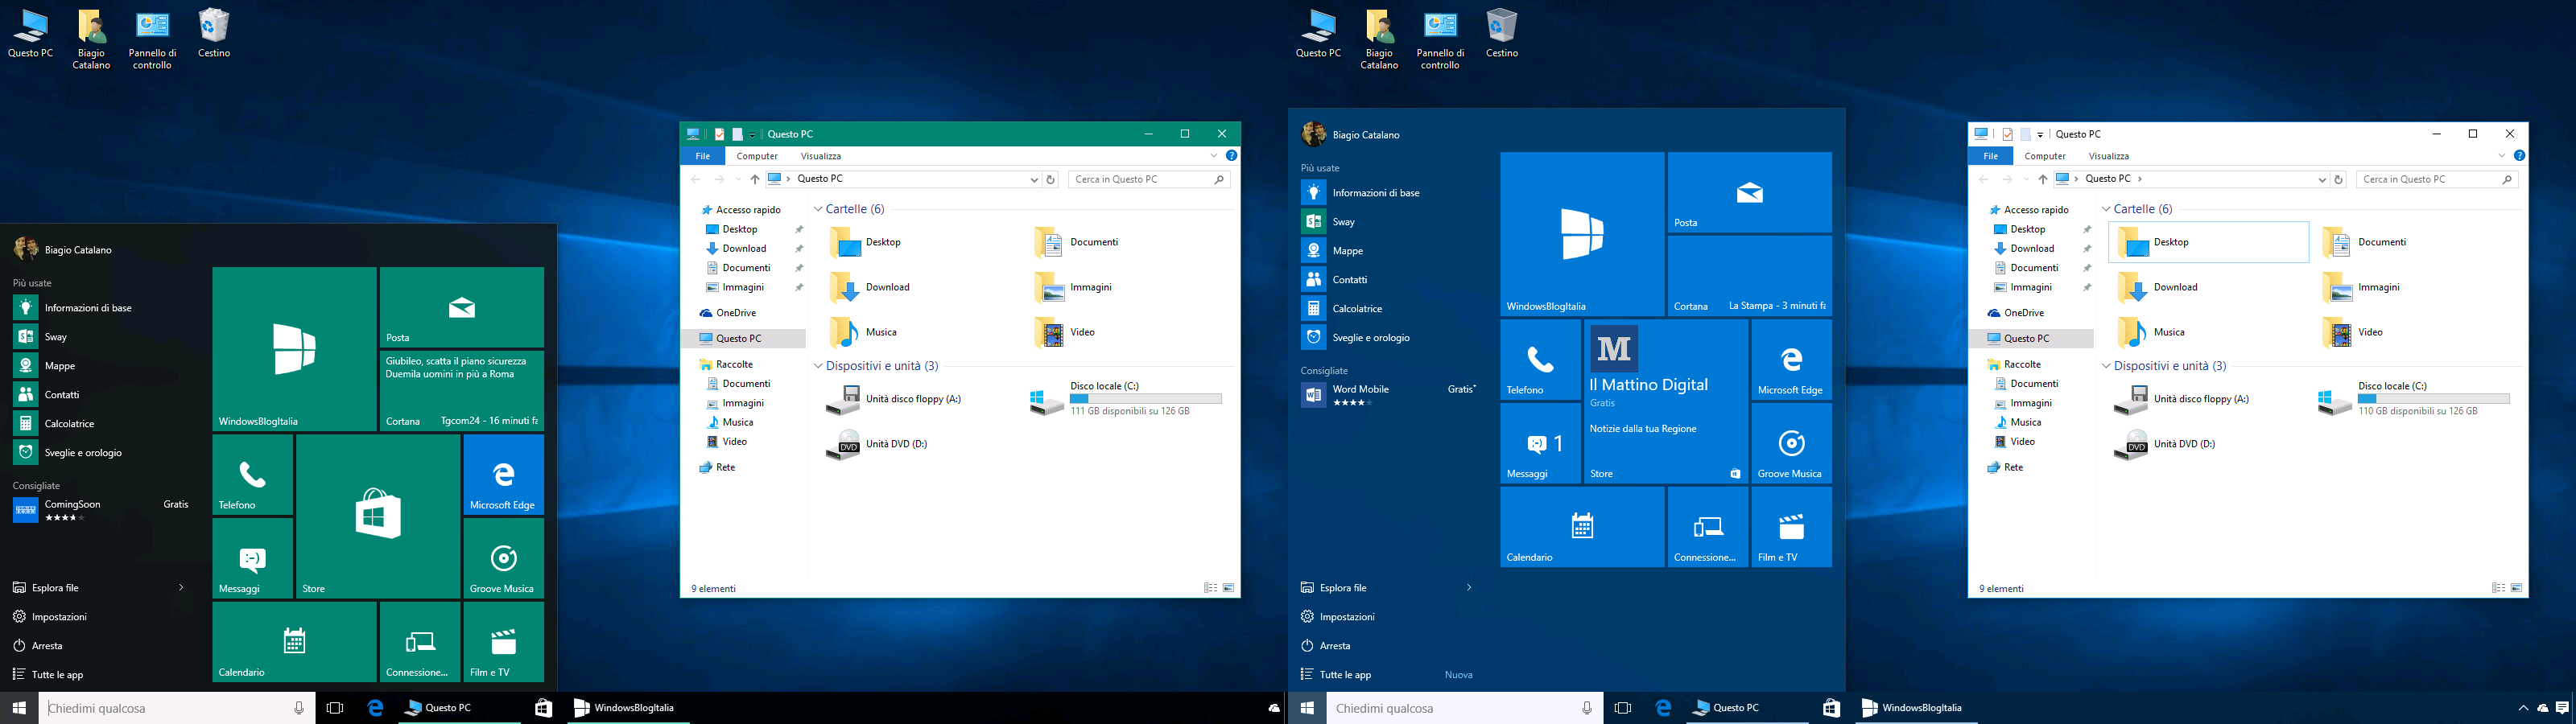 Tile bar e taskbar Windows 10